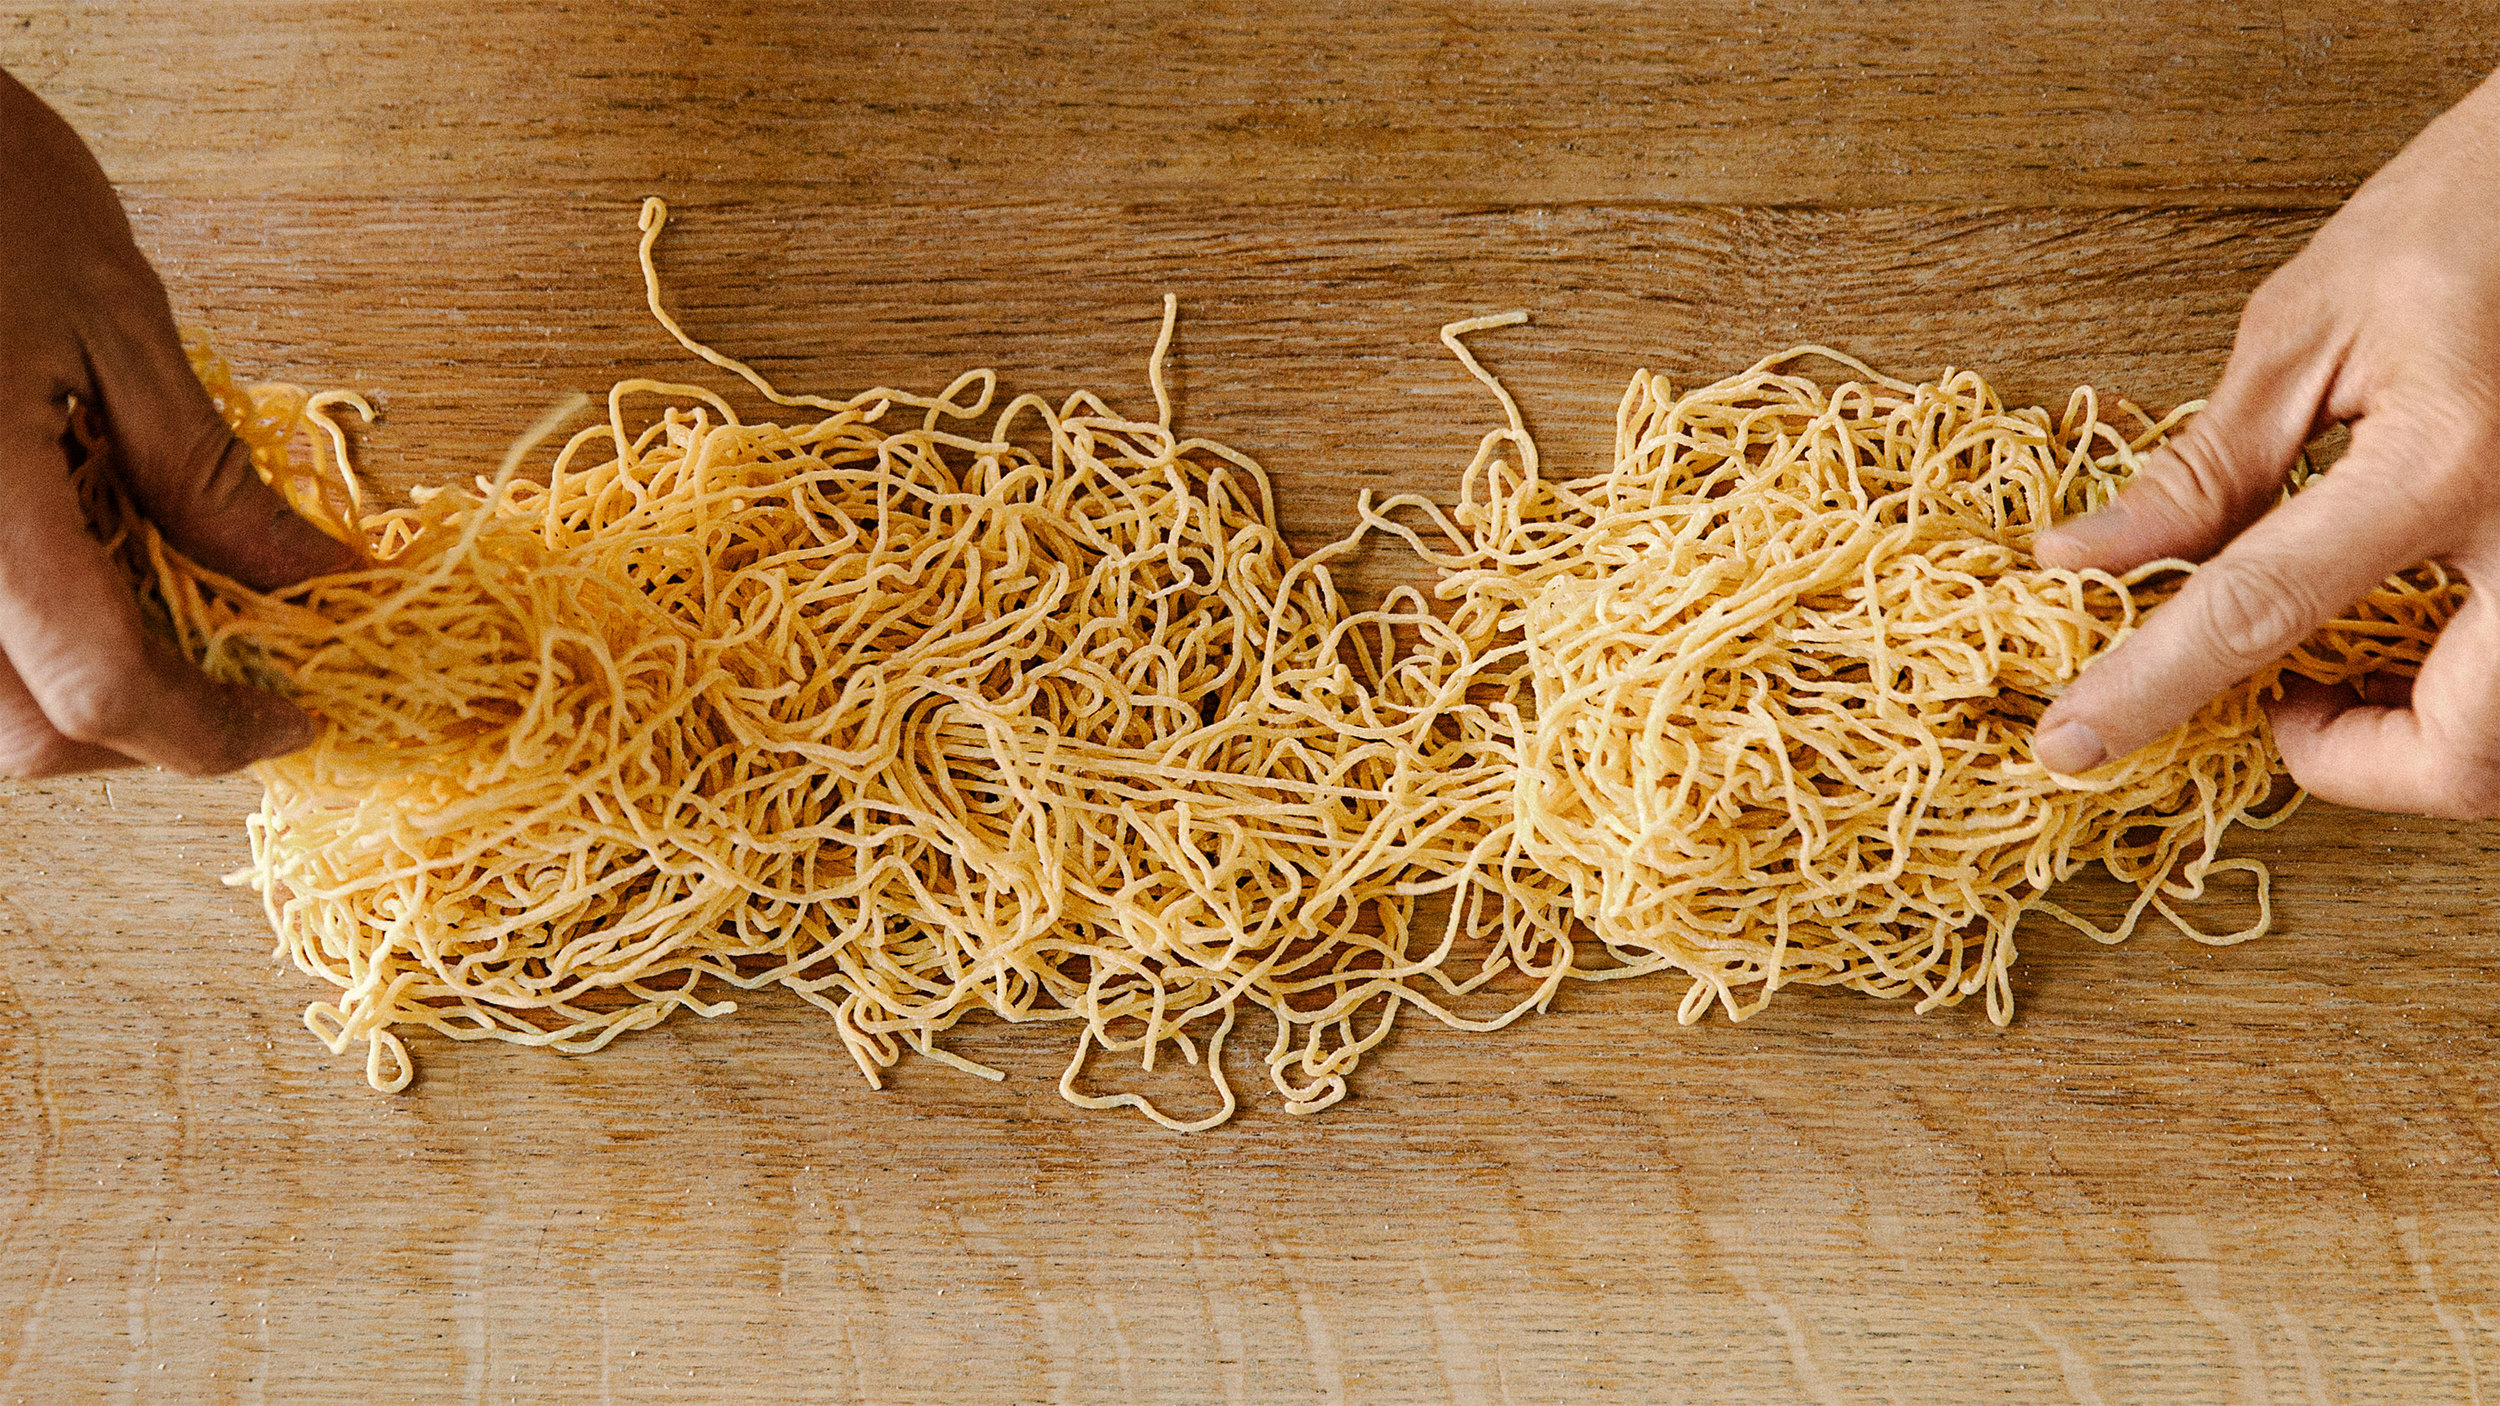 NOODLES,NOODLES &MORE NOODLES - We take on a NEW space with a NEW concept